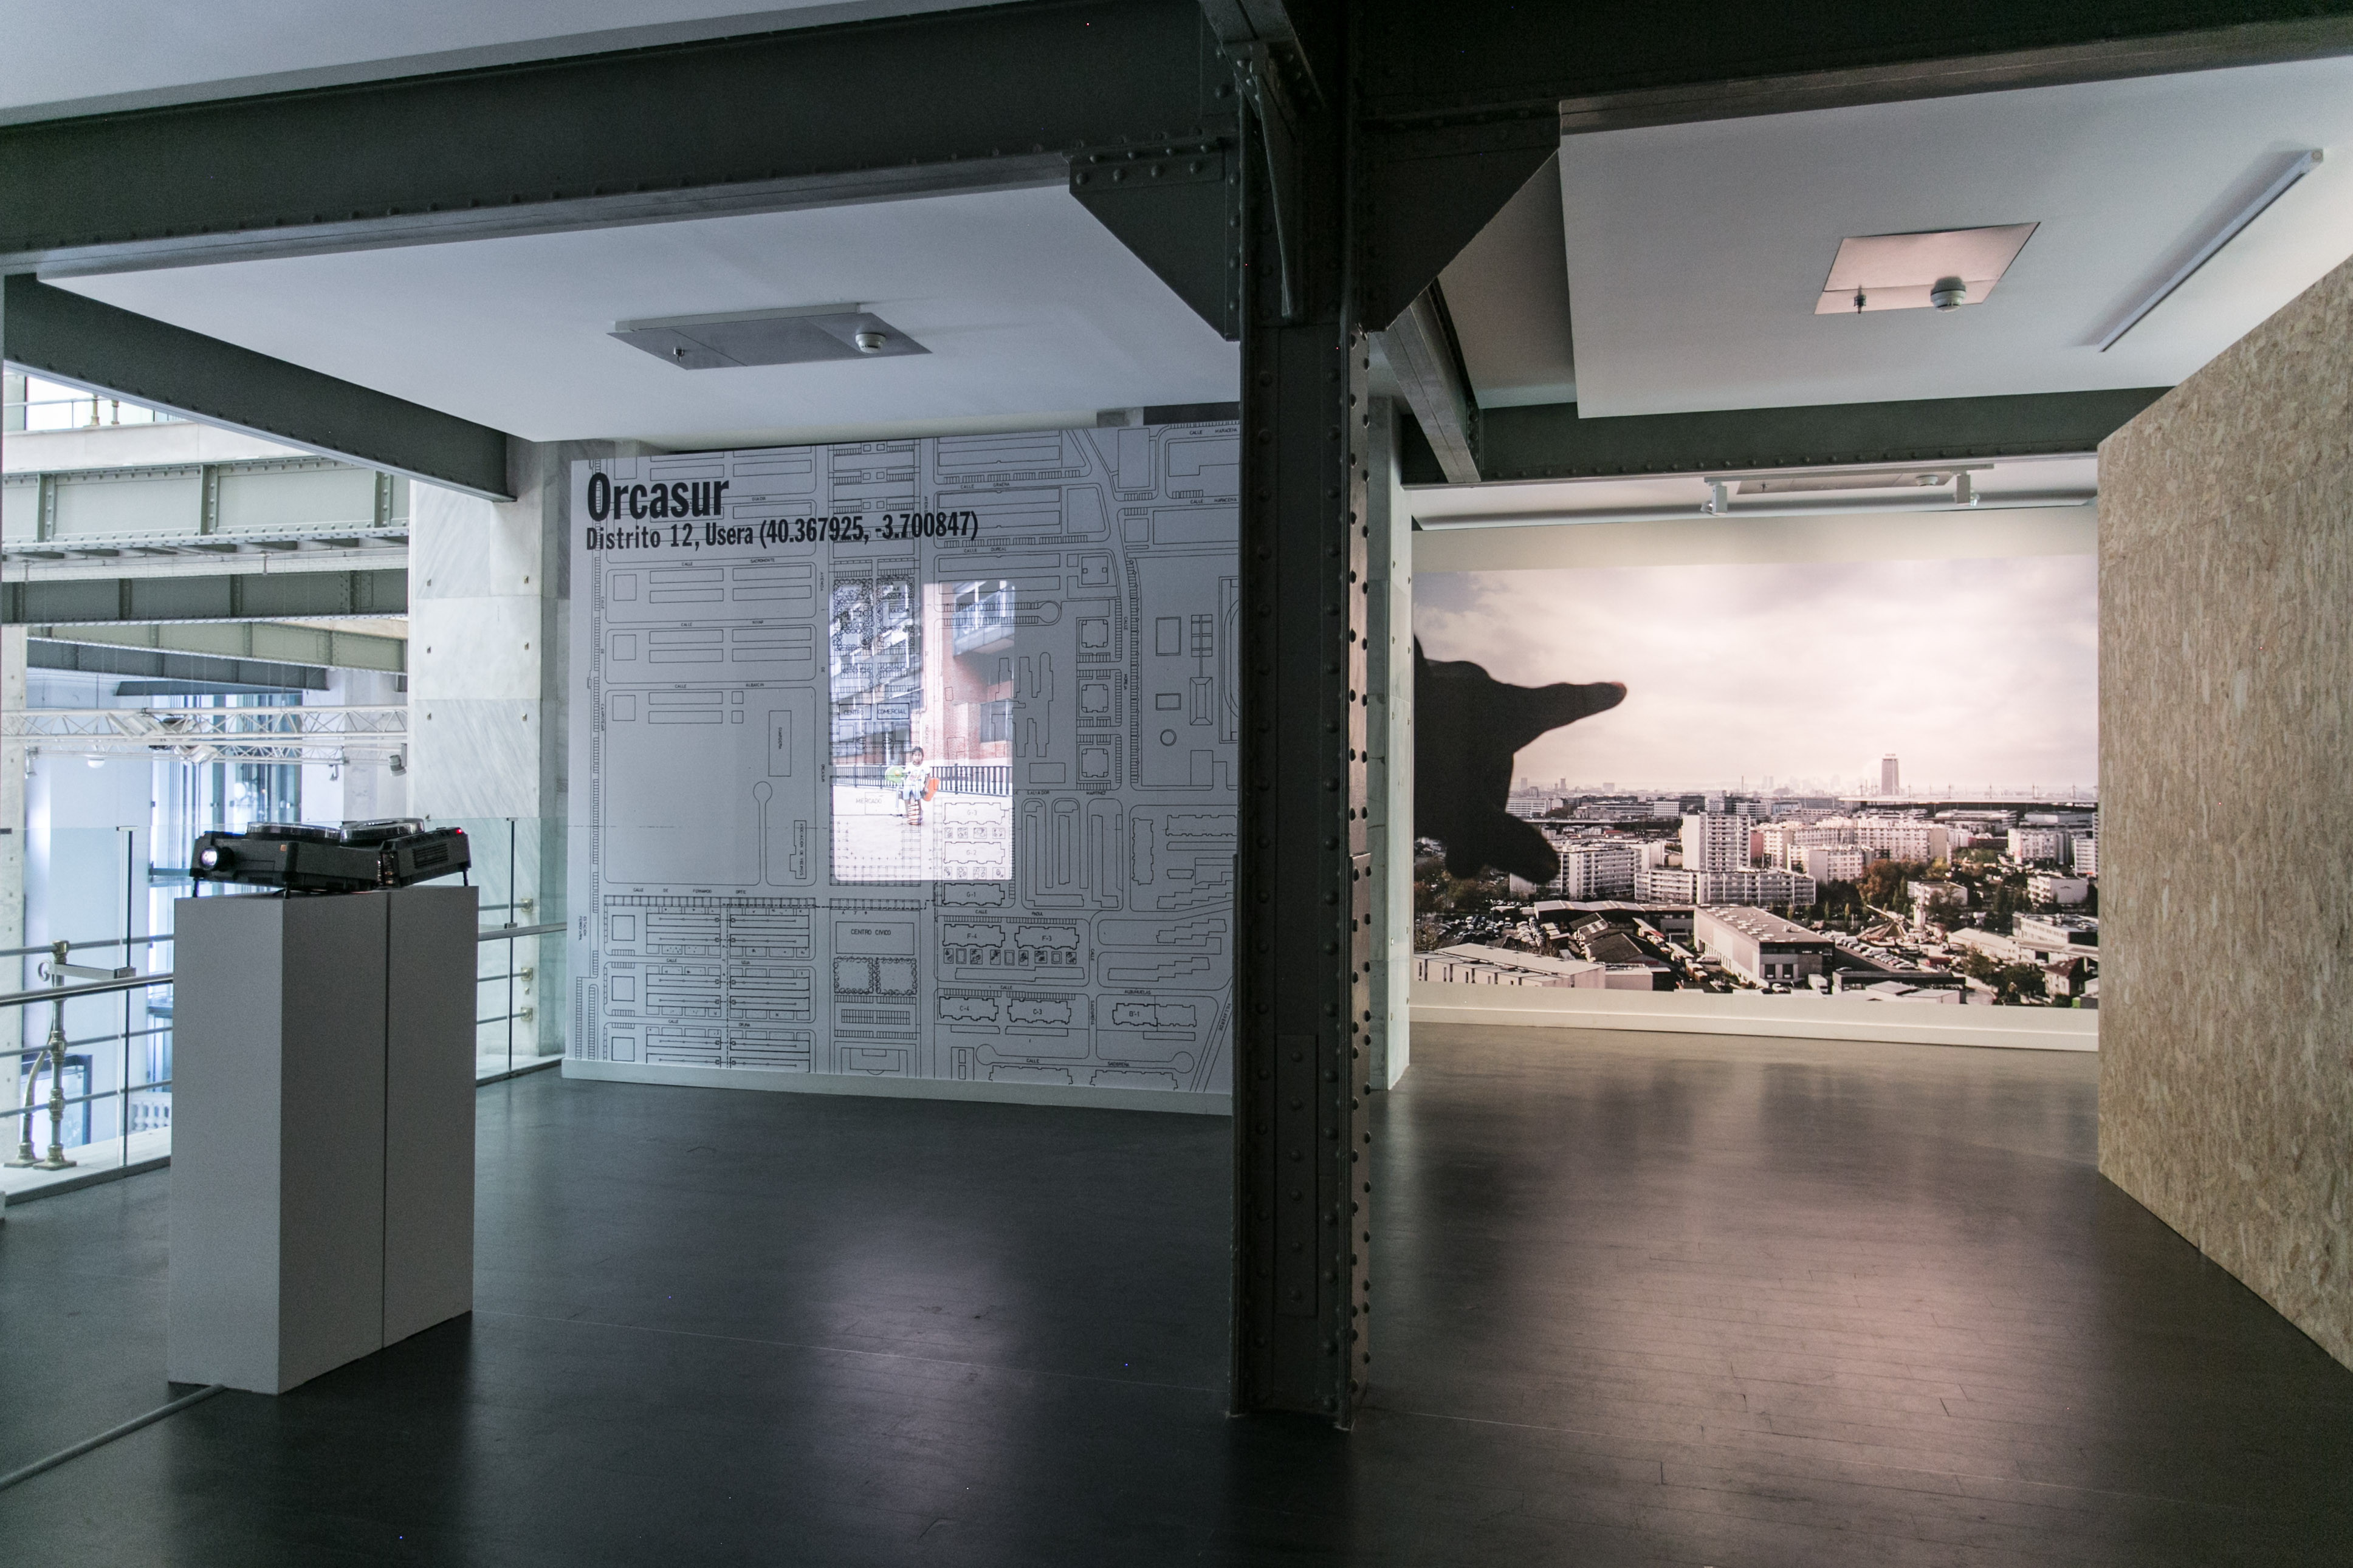 CentroCentro-lamemeindifference-009